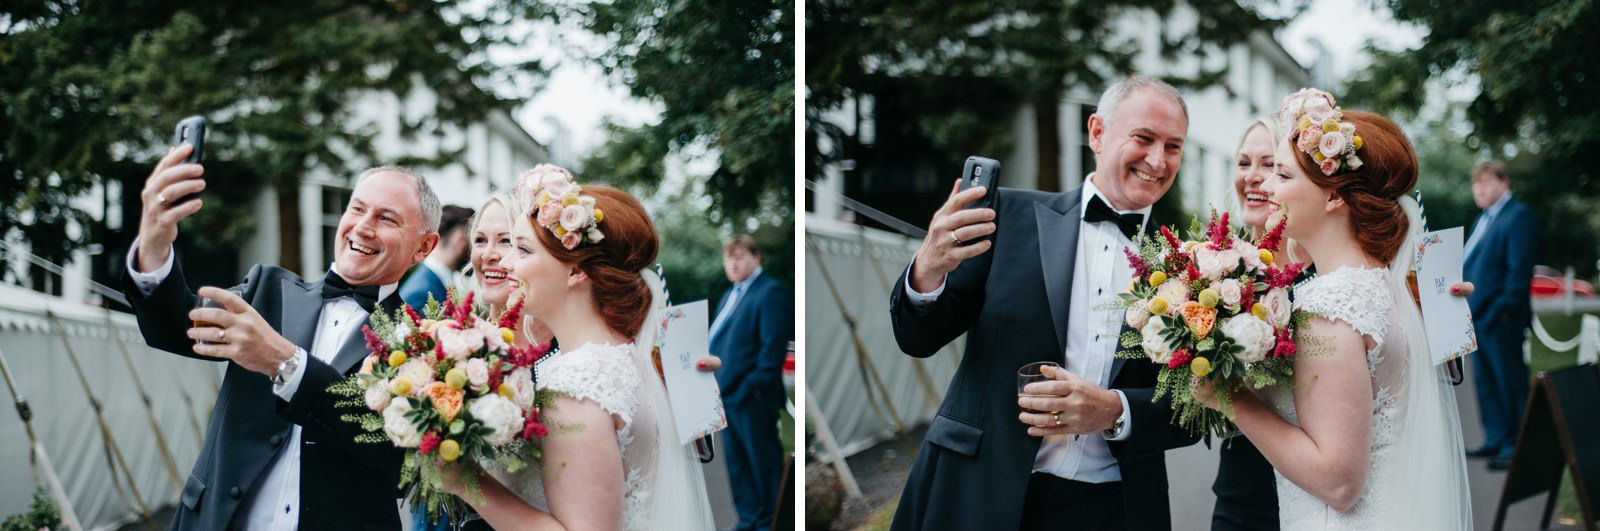 bride taking selfies with wedding guests at her Enterkine House Wedding